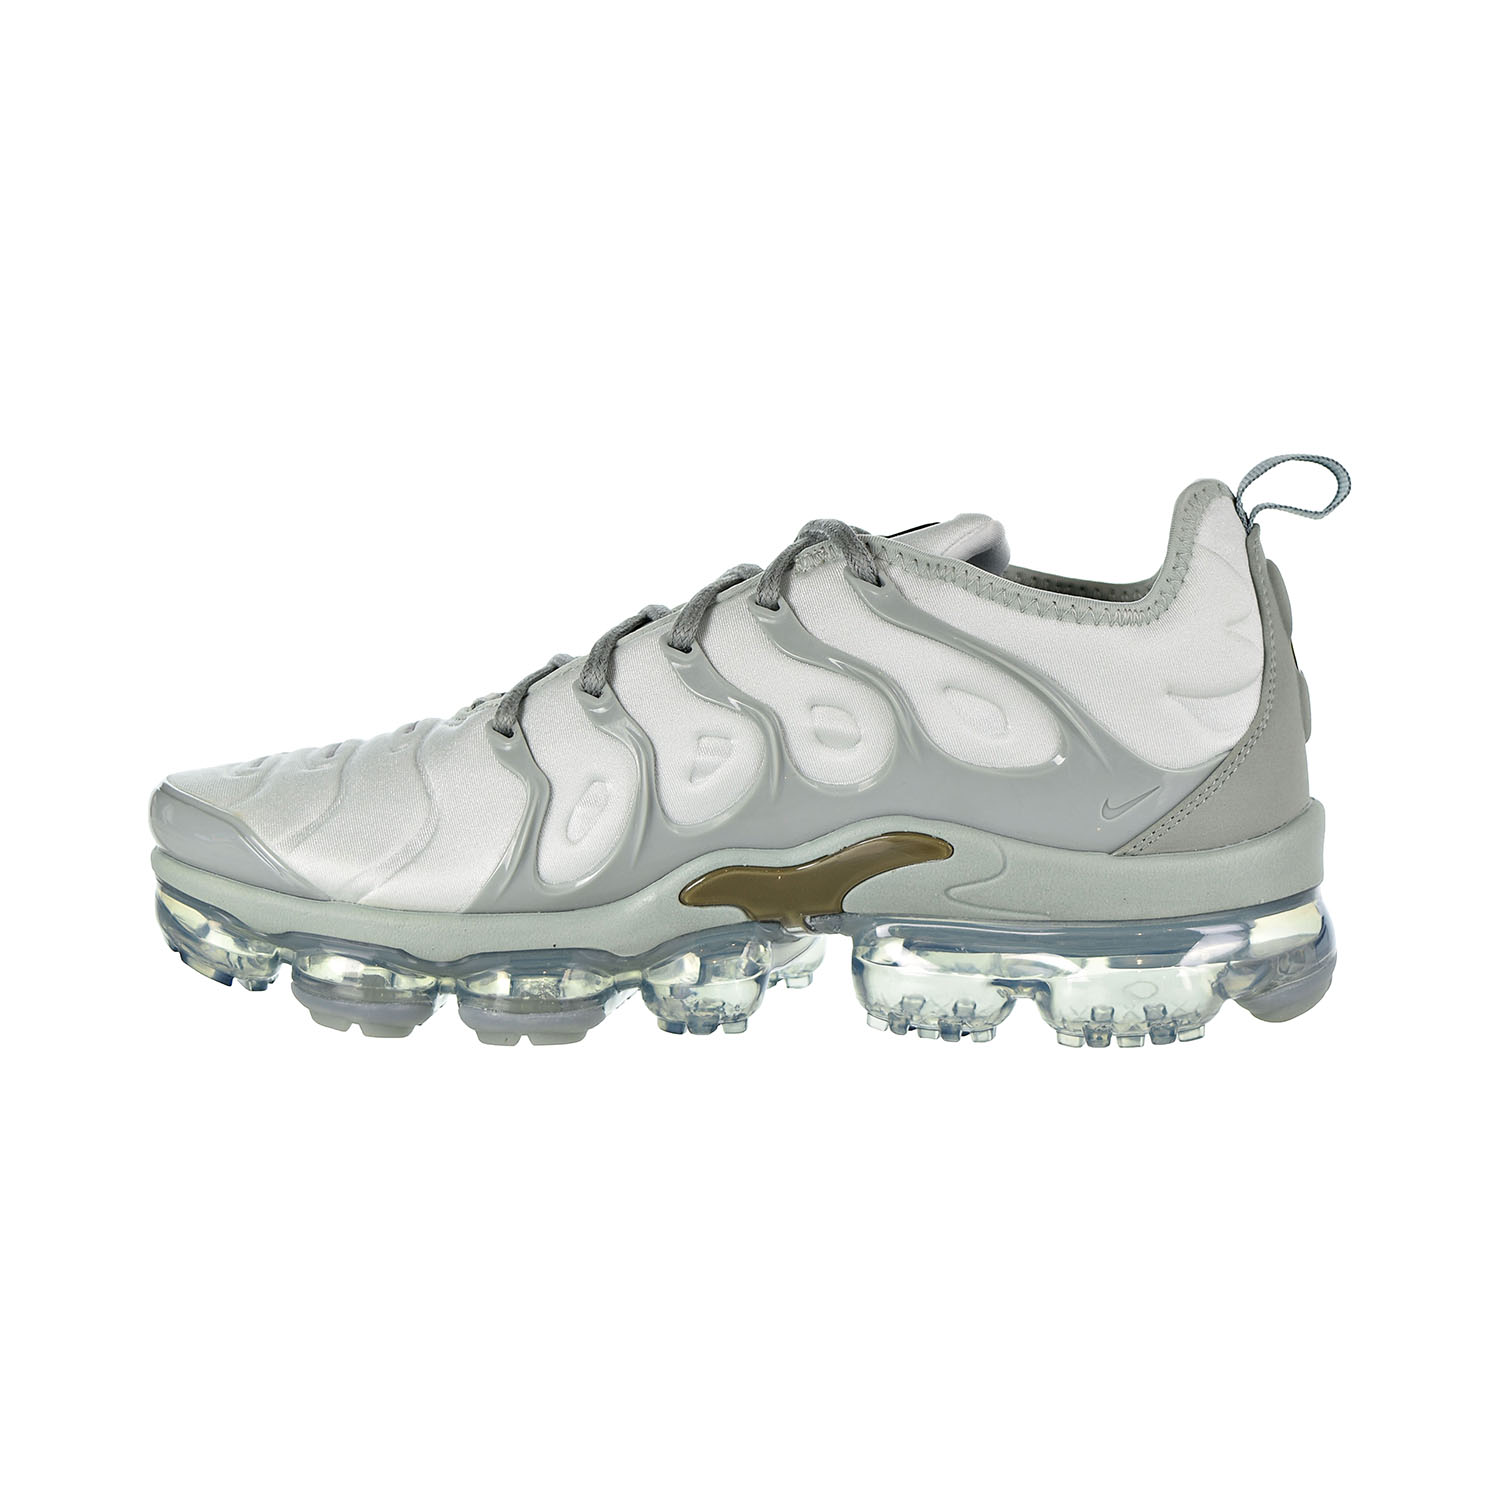 d47d1820fc4cd Nike Air Vapormax Plus Women s Shoes Light Silver Medium Olive ao4550-006